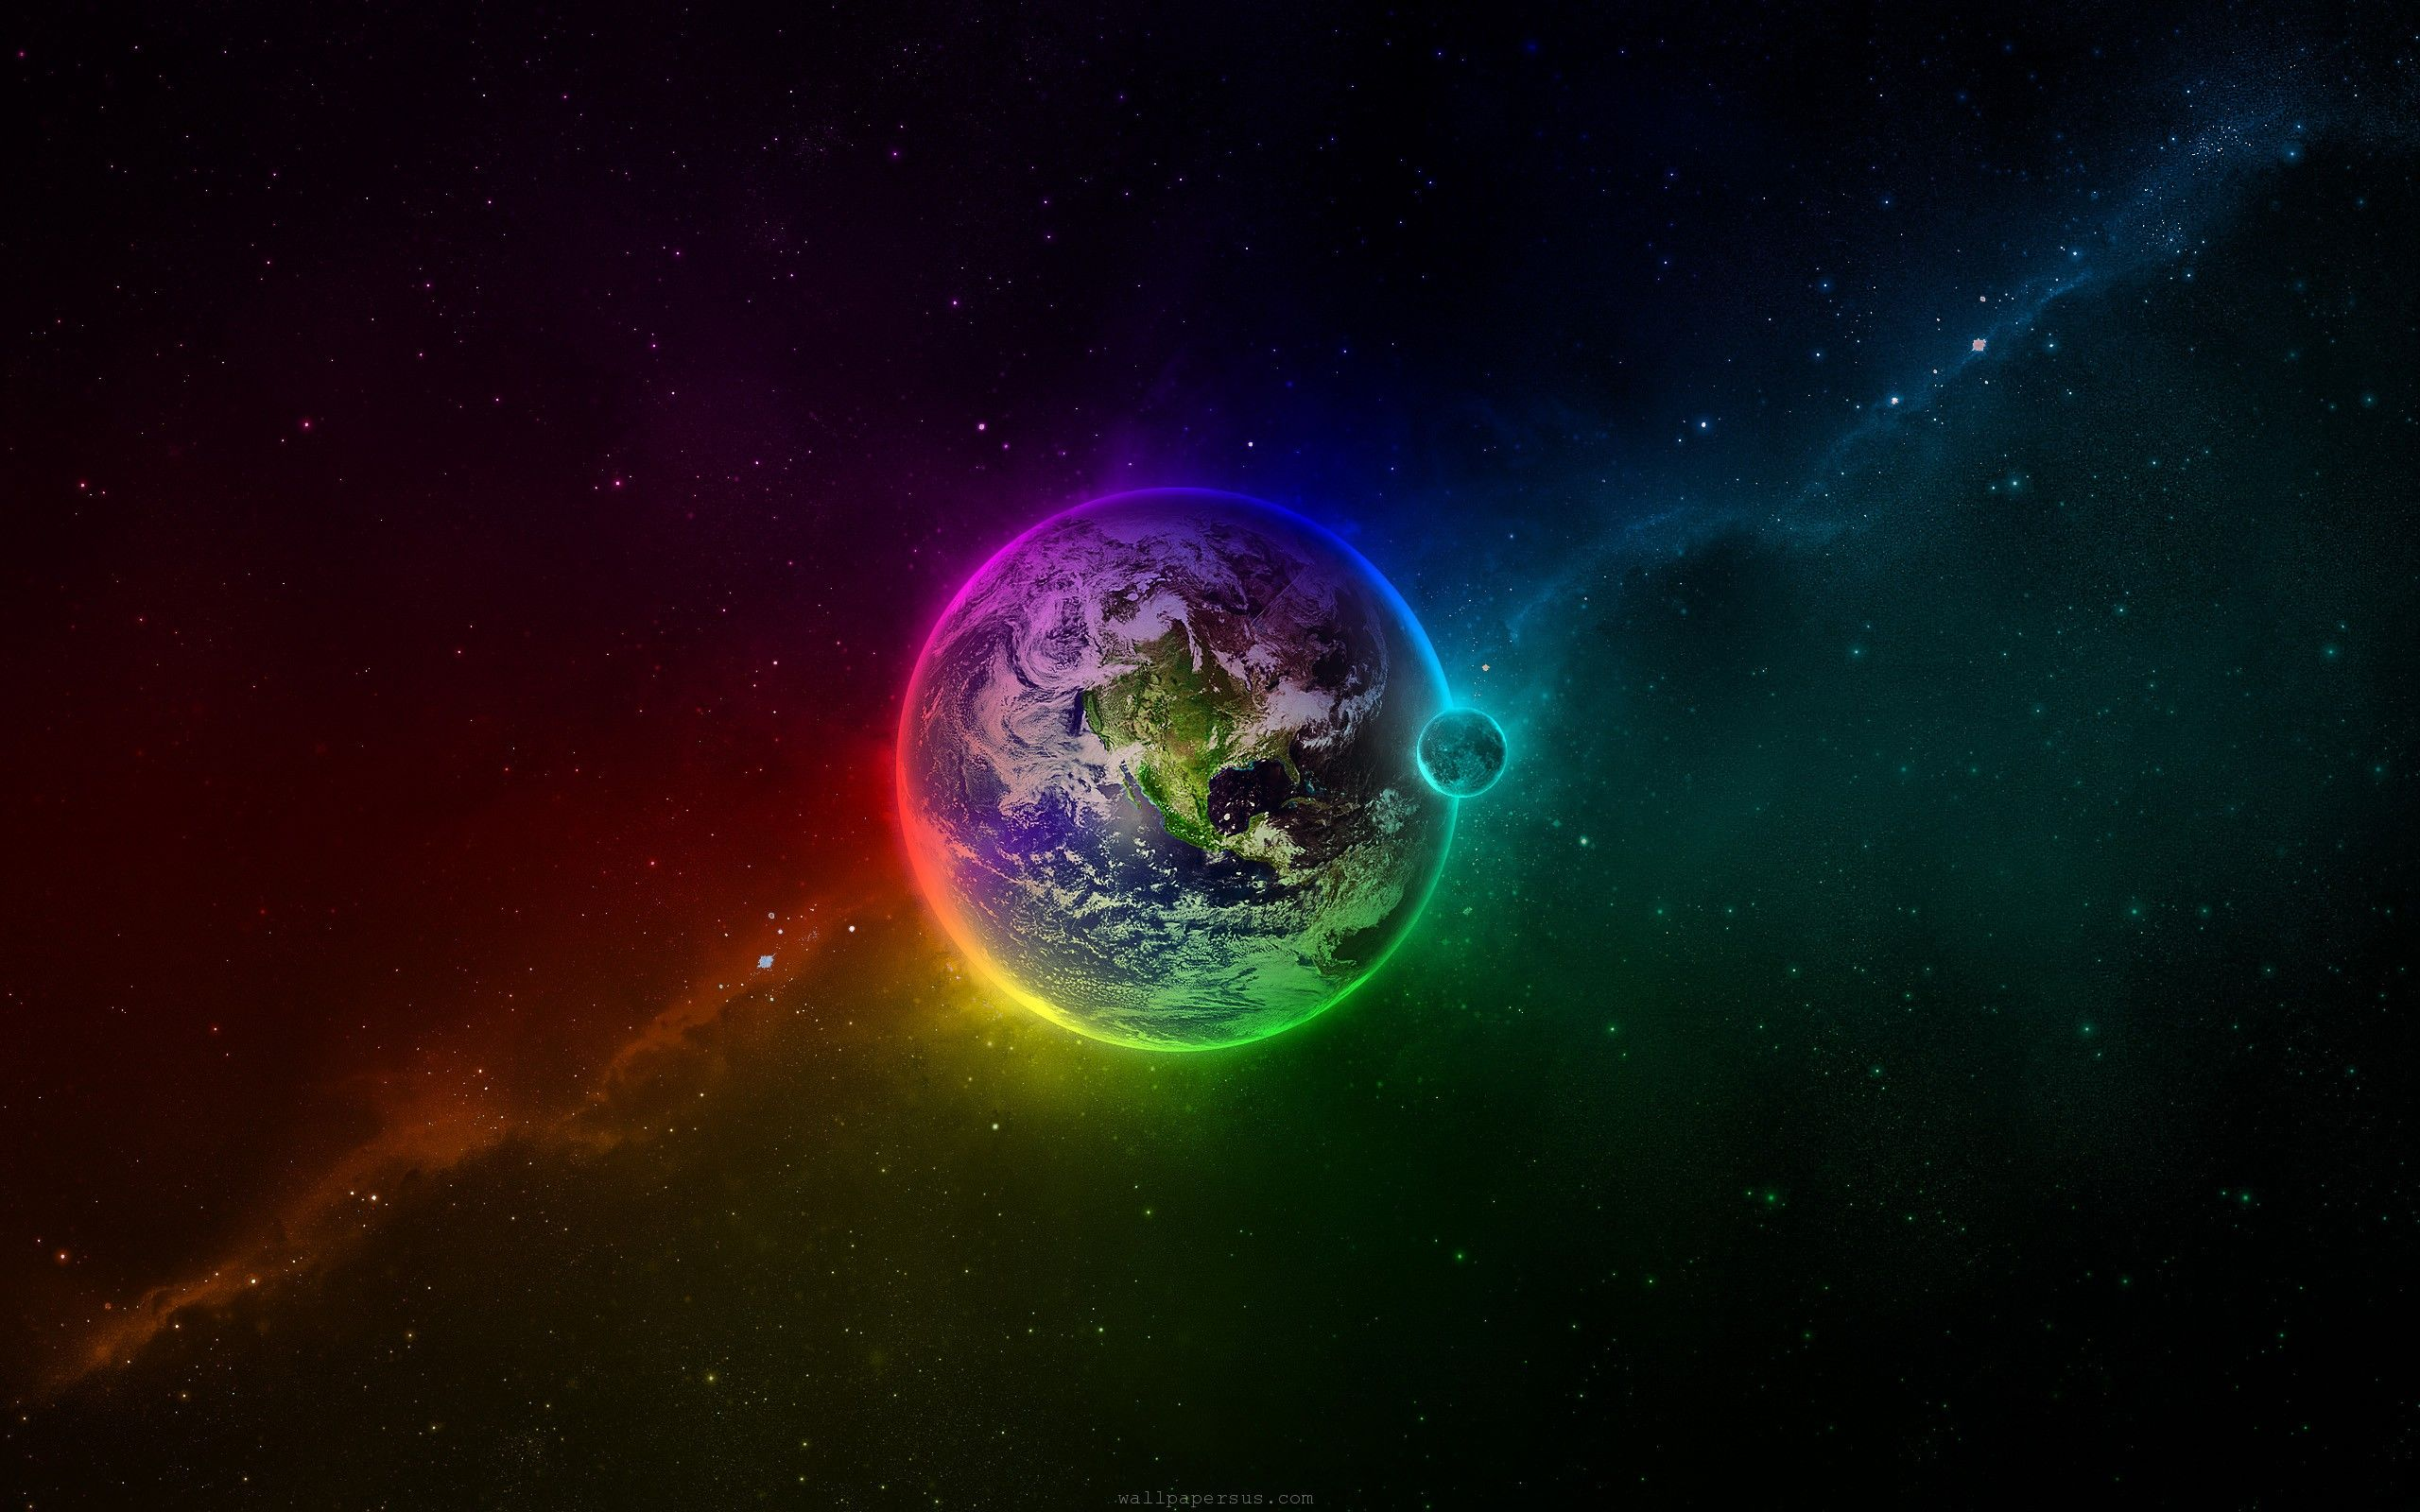 Rainbow Earth Space Wallpaper Android Wallpapers Jpg 2560 1600 Background Hd Wallpaper Earth From Space Galaxy Wallpaper